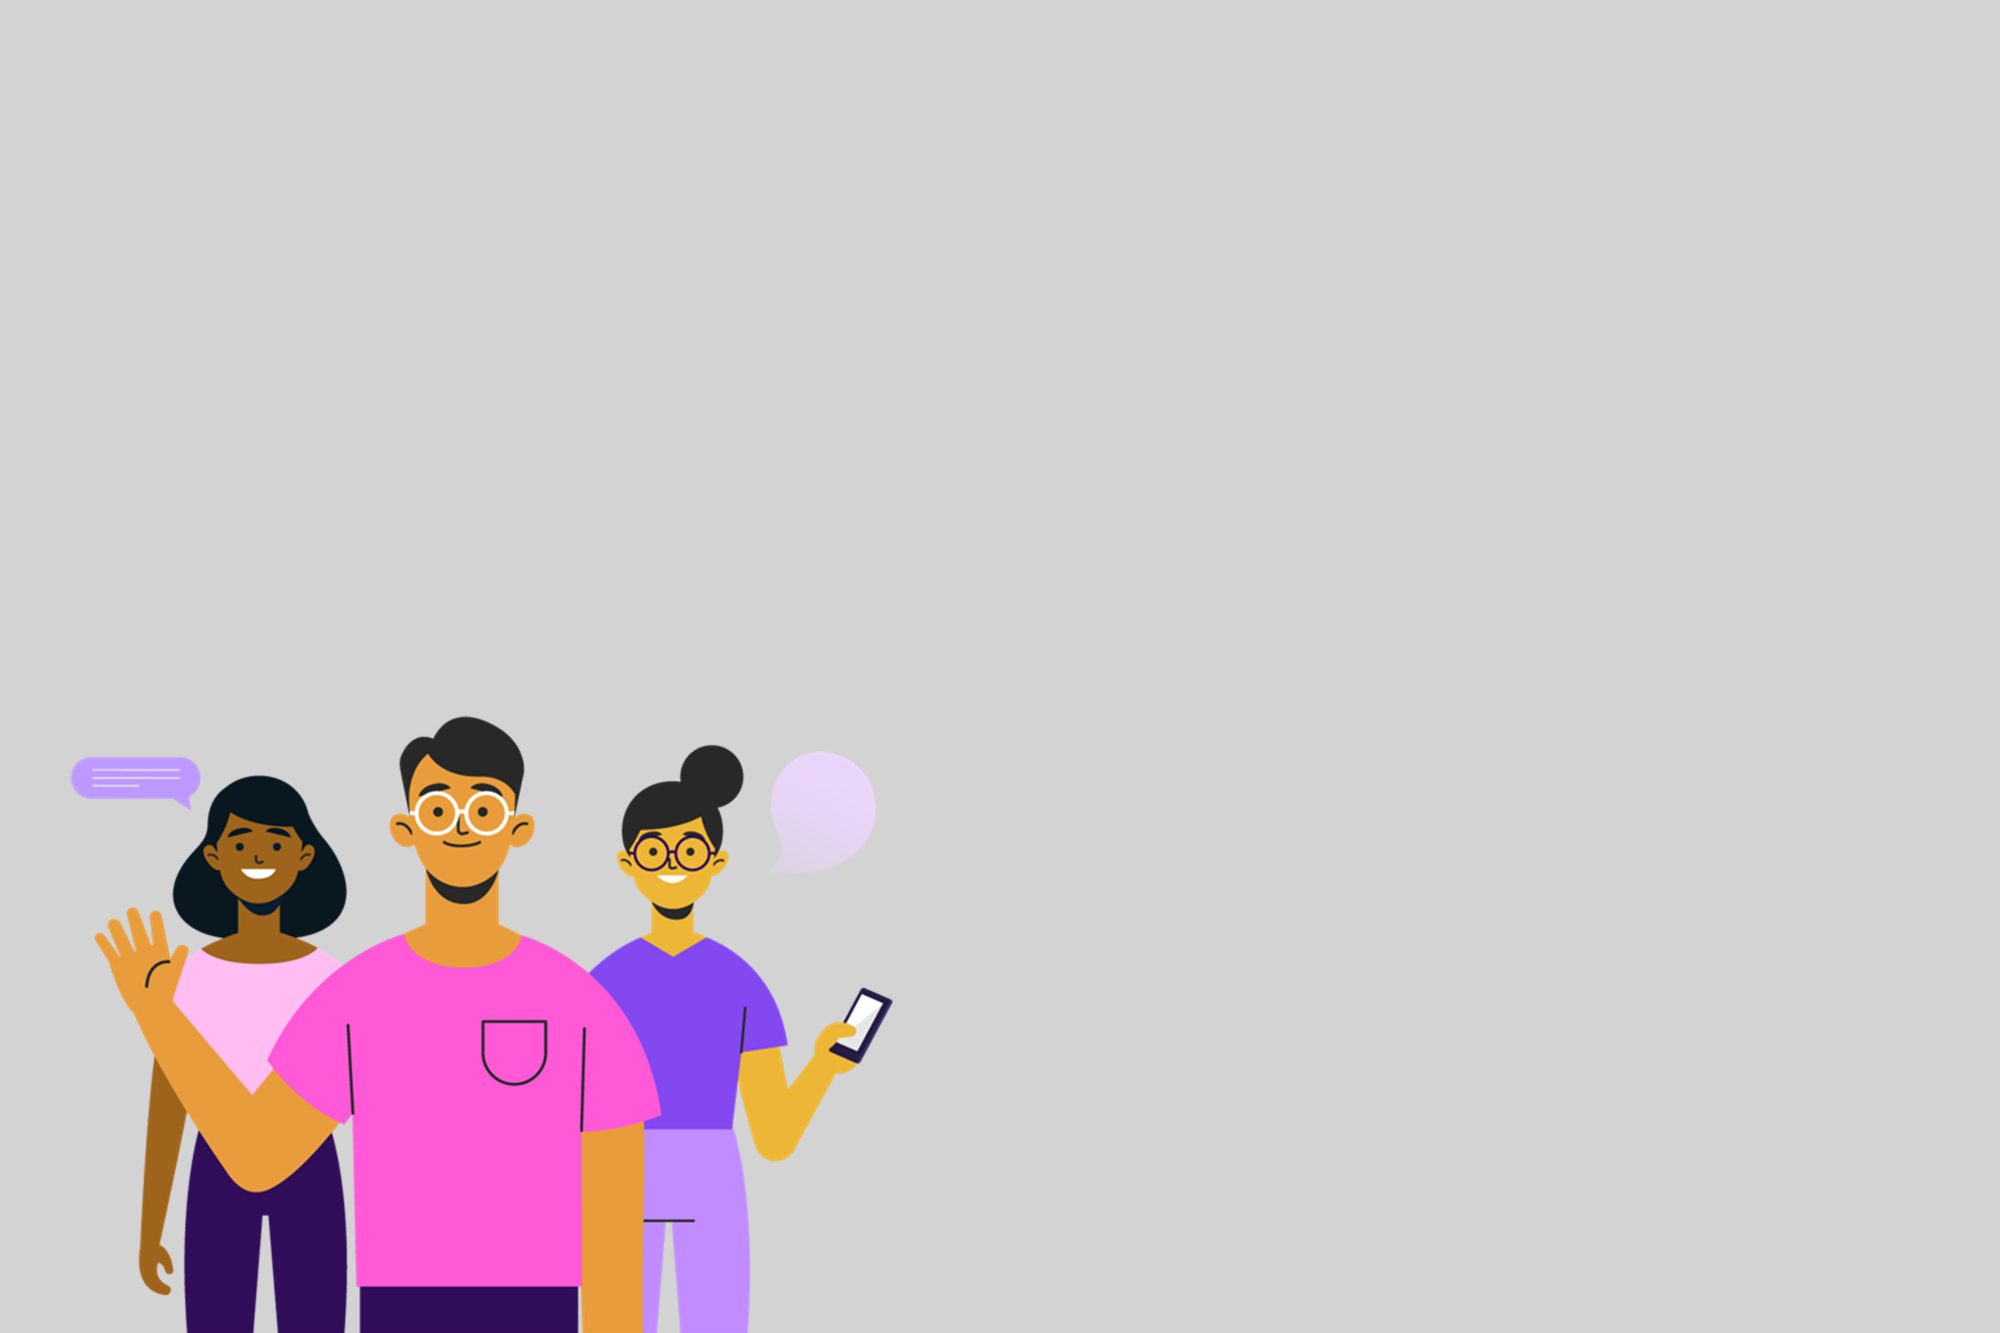 Friendship day influencer marketing campaign insights